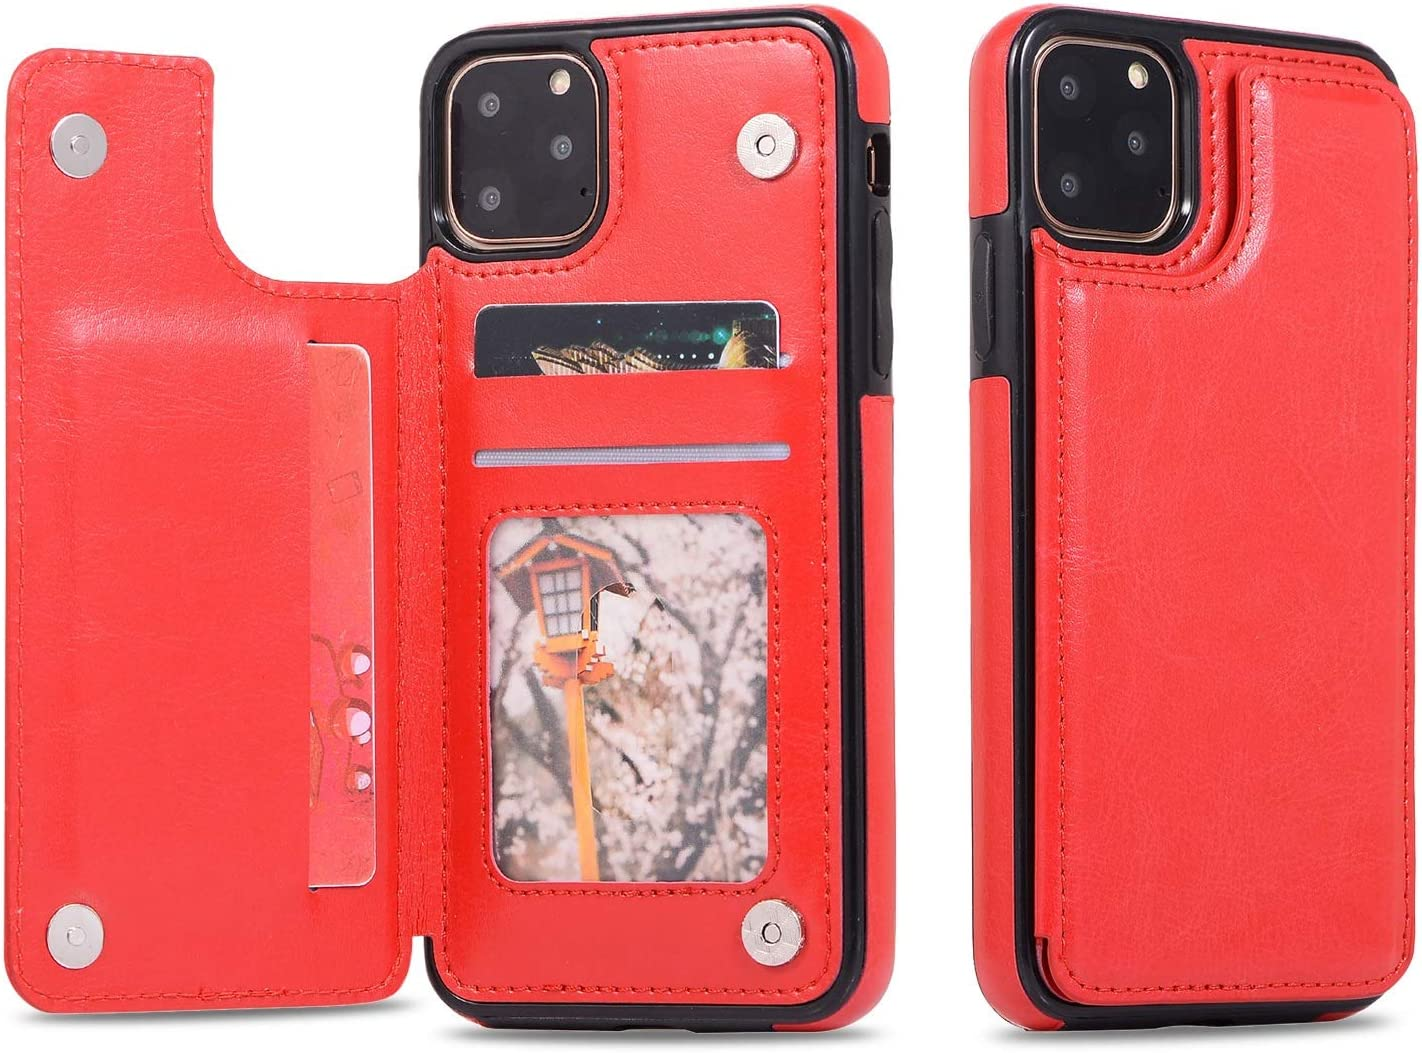 XINHUANG Leather Phone Case for iPhone 8 11 Pro Max X 7 8 Plus 5 5s Business Card Holders Retro PU Case for iPhone Xs Max XR 6 6s 7 8 XS (Color : C, Size : Iphone7/8 Plus)